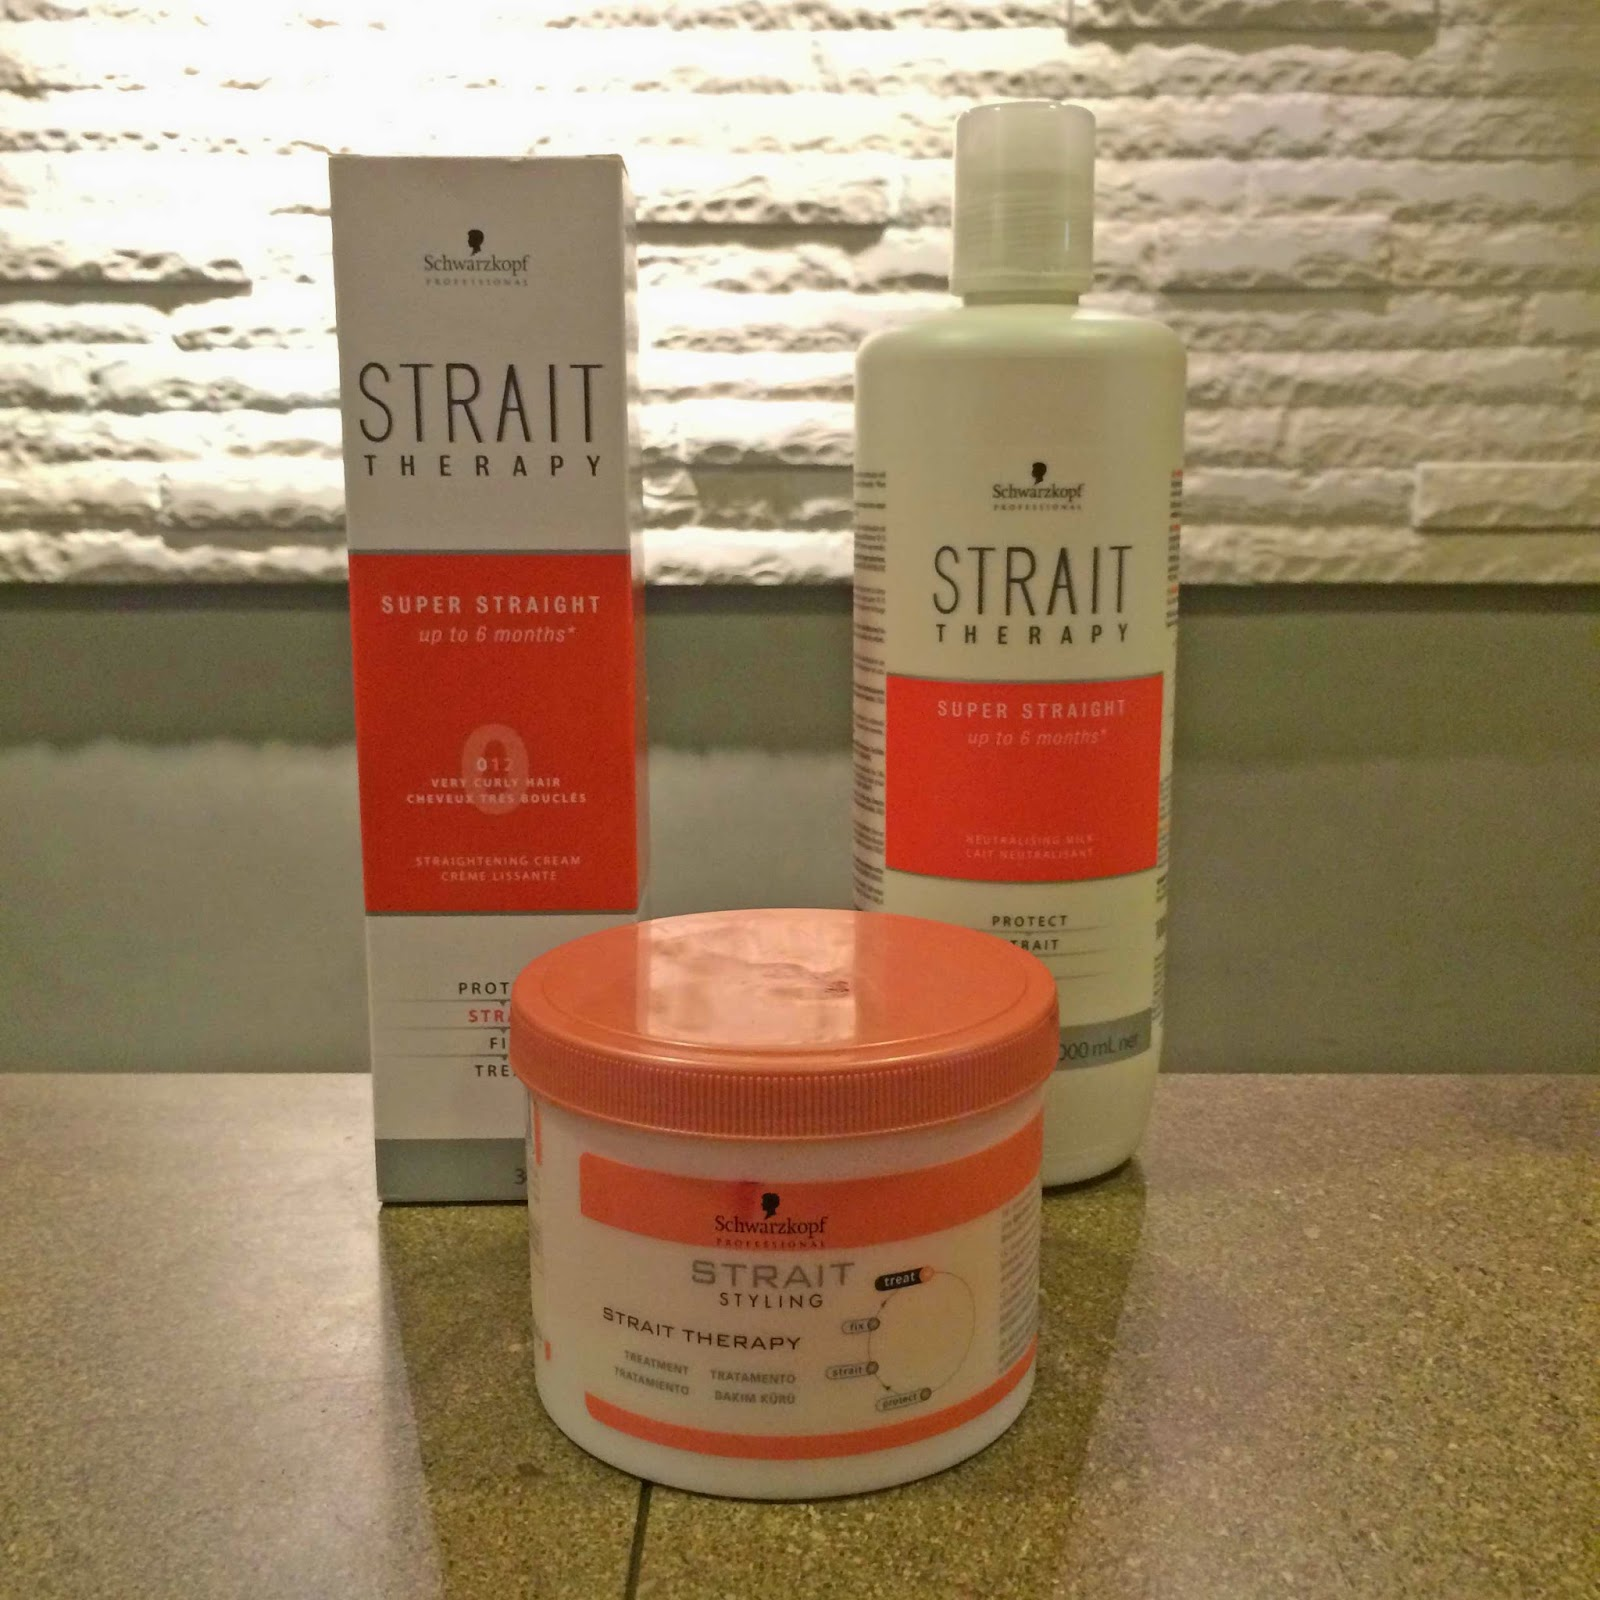 schwarzkopf strait therapy hair products